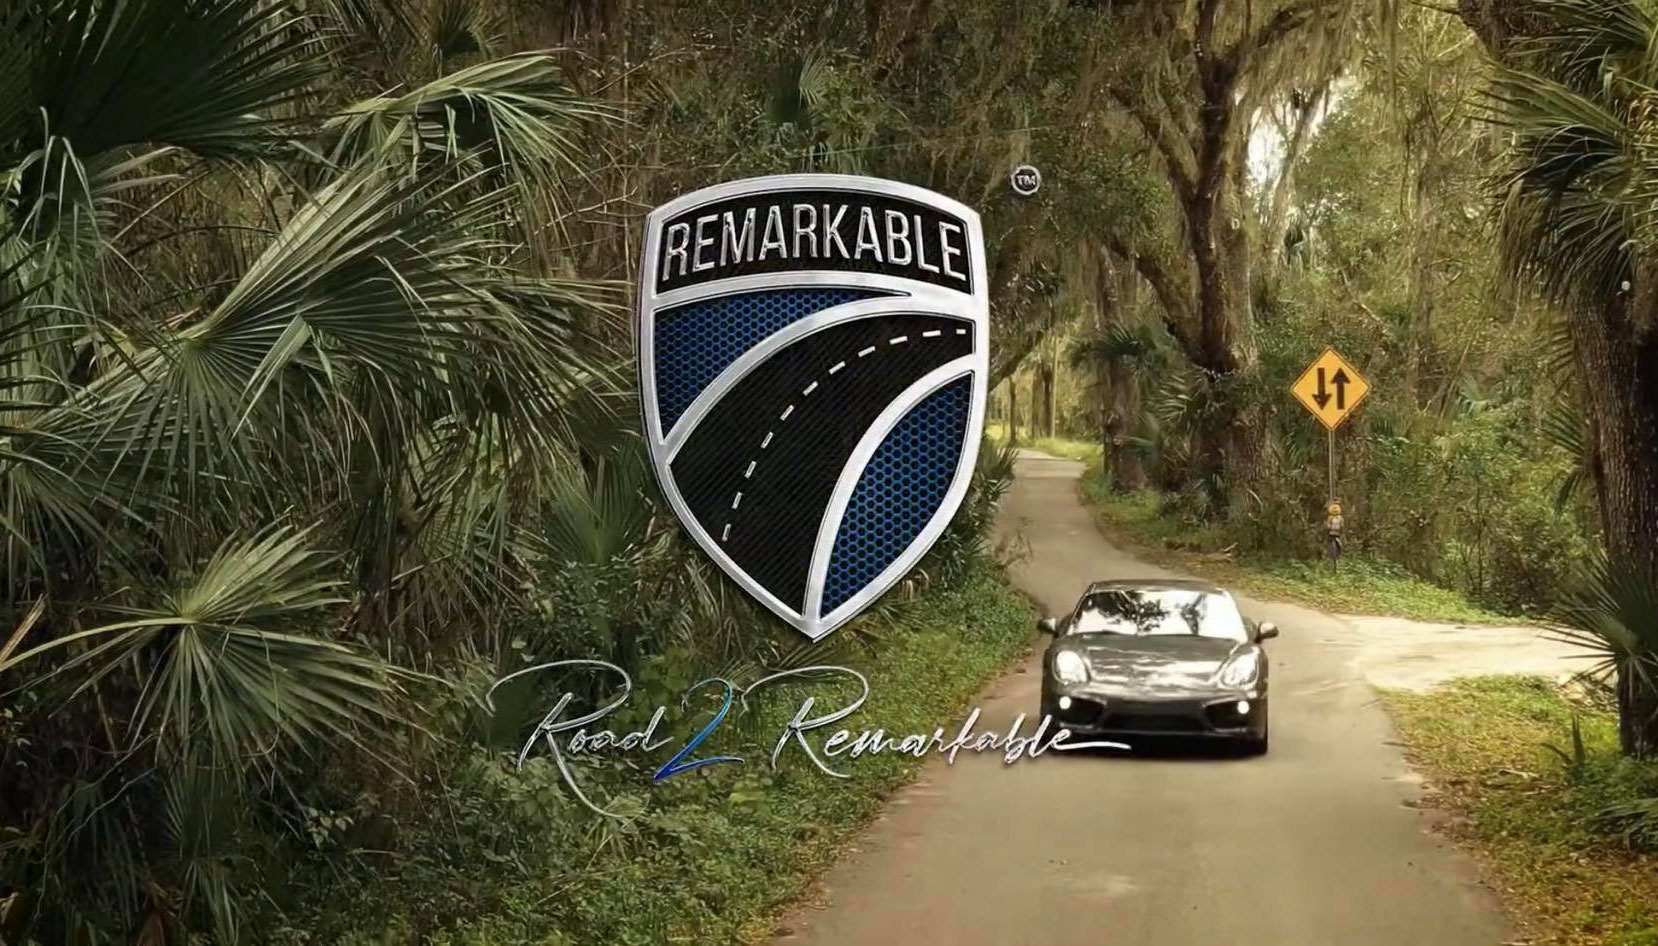 Road 2 Remarkable